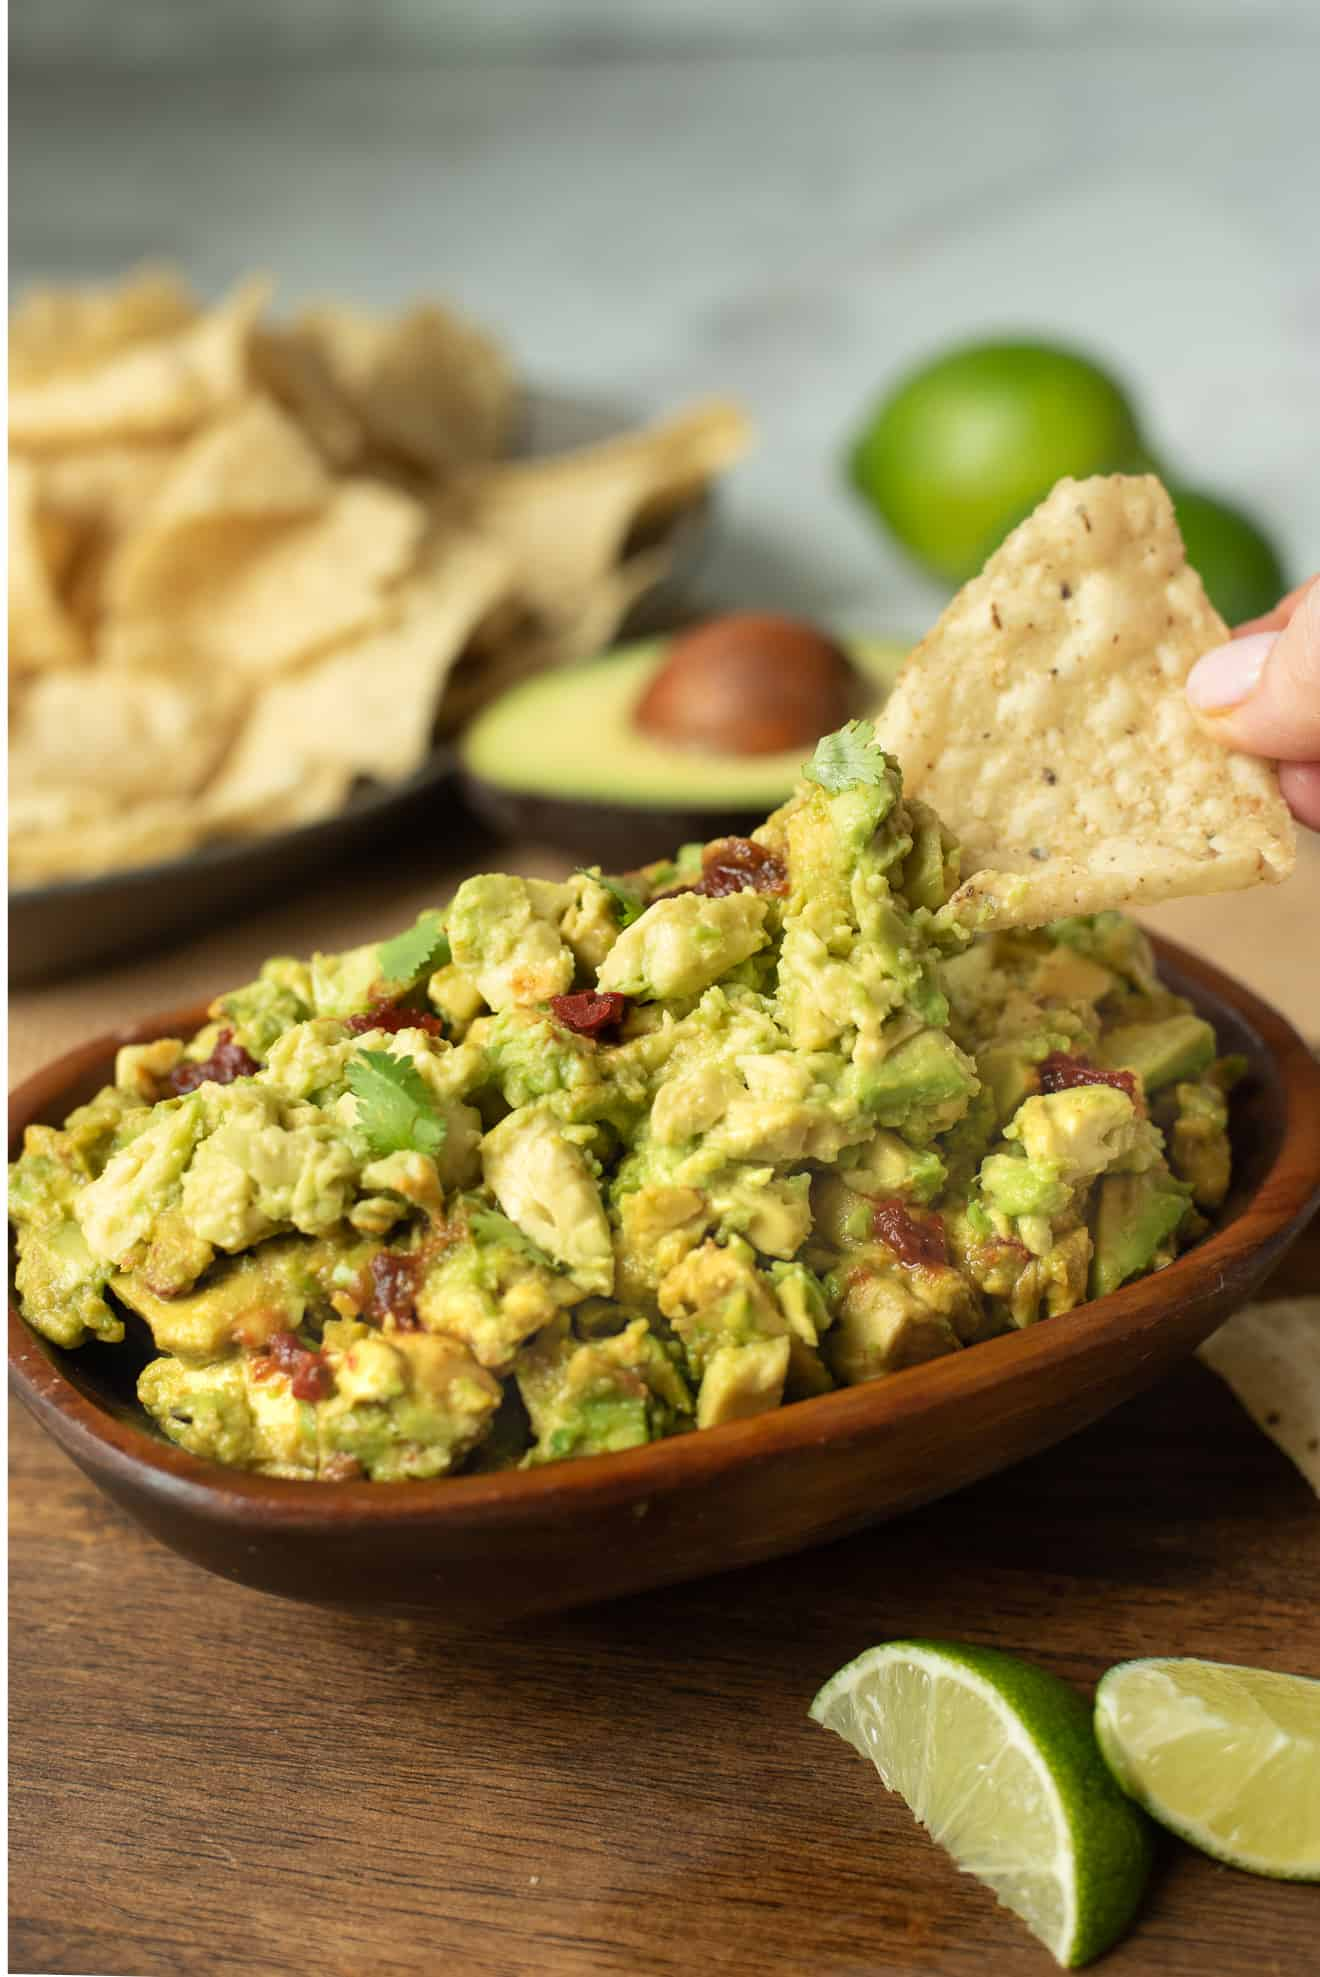 Scooping up some spicy guacamole with a tortilla chip